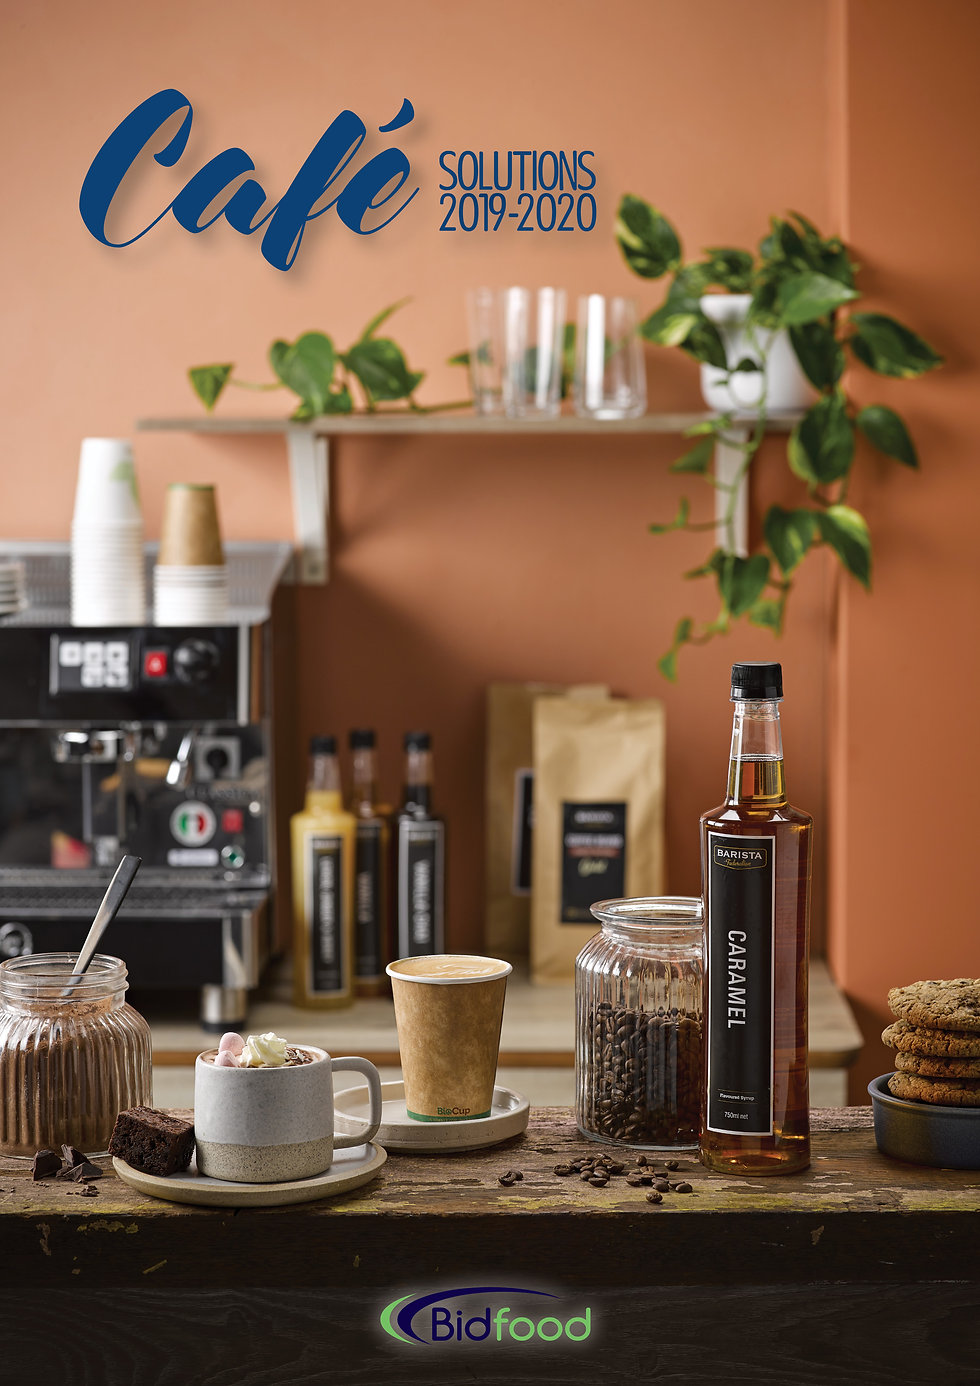 Cafe Solutions